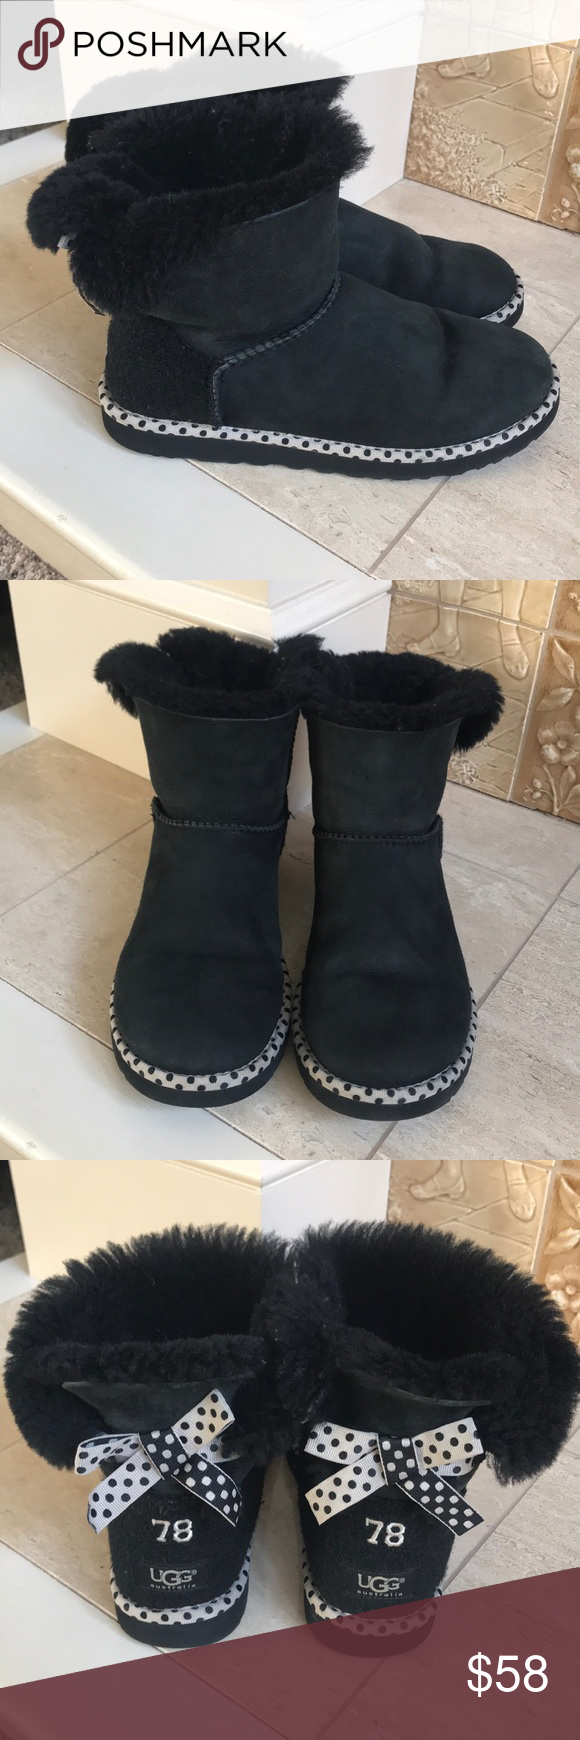 Ugg Boots Boots Ugg Boots Uggs